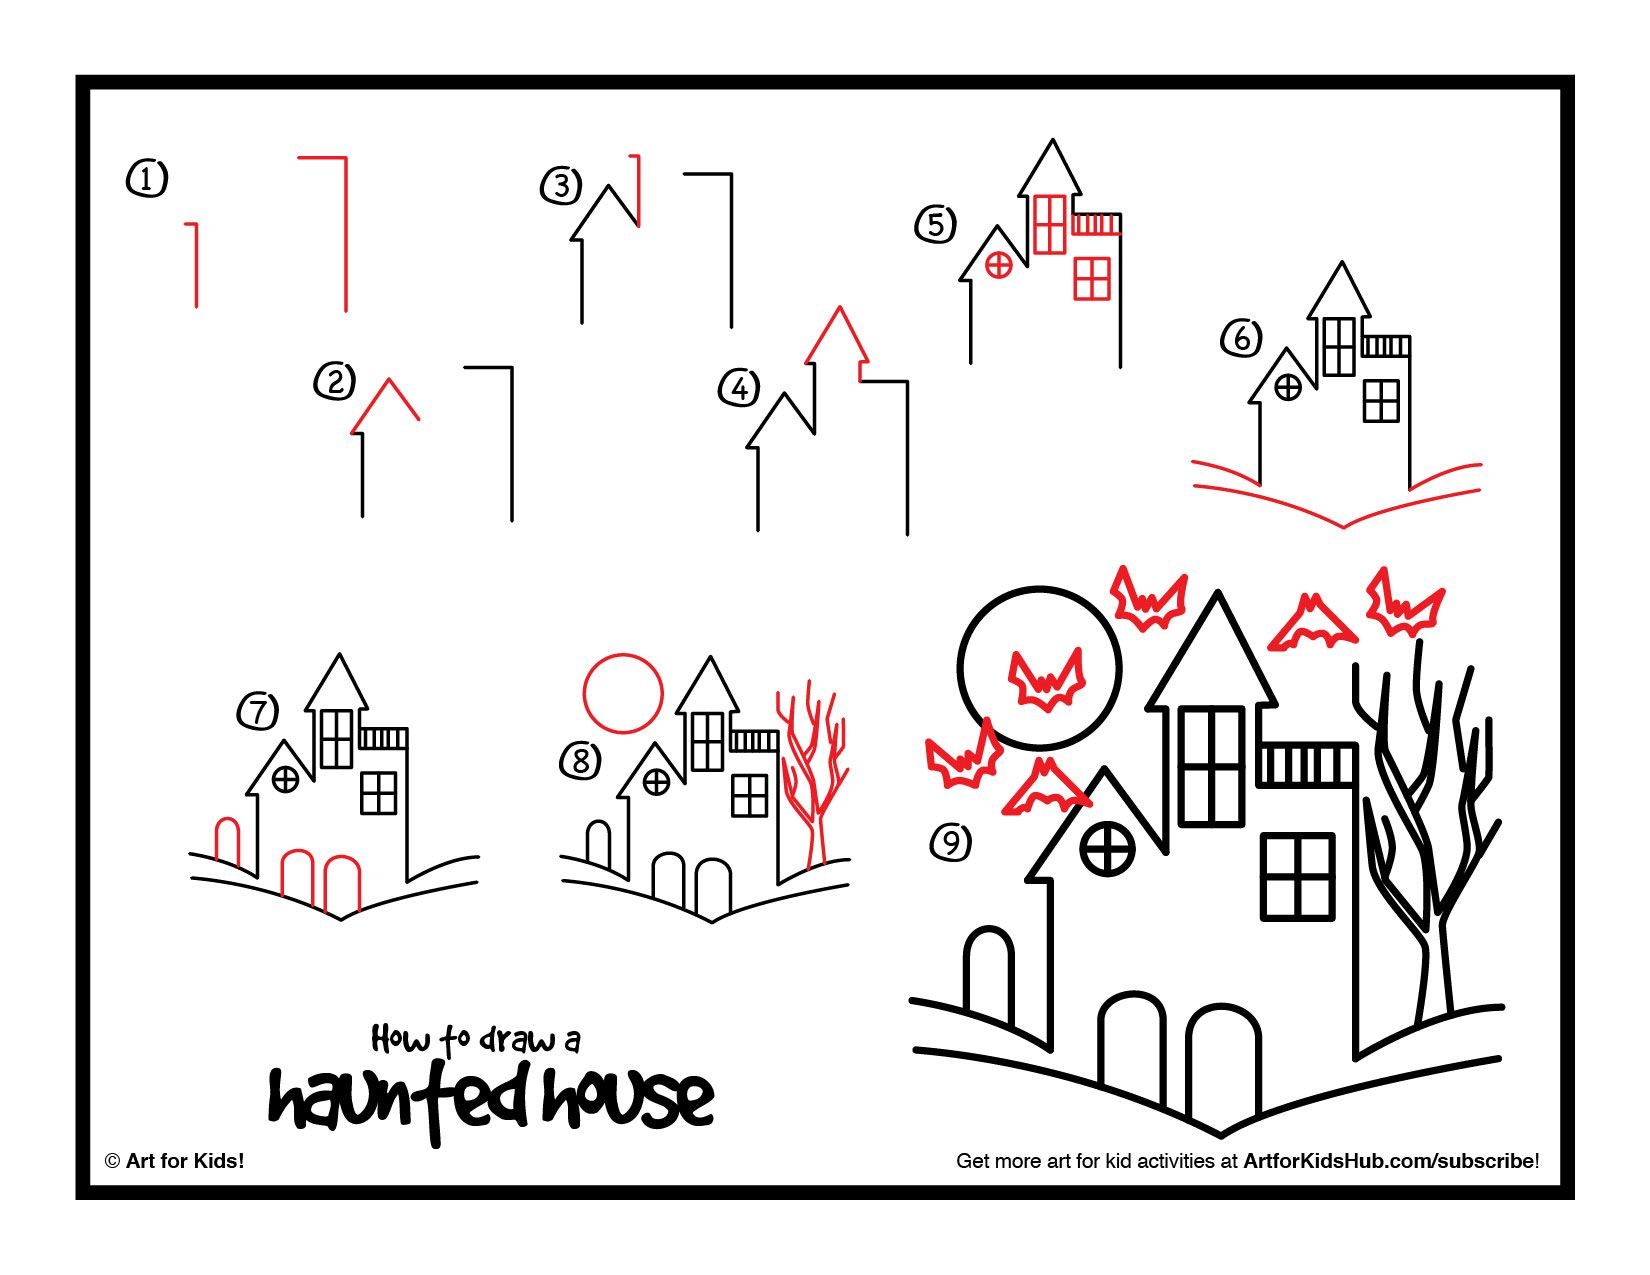 How To Draw A Haunted House Art For Kids Hub Drawing Books For Kids Haunted House Drawing Drawing Videos For Kids